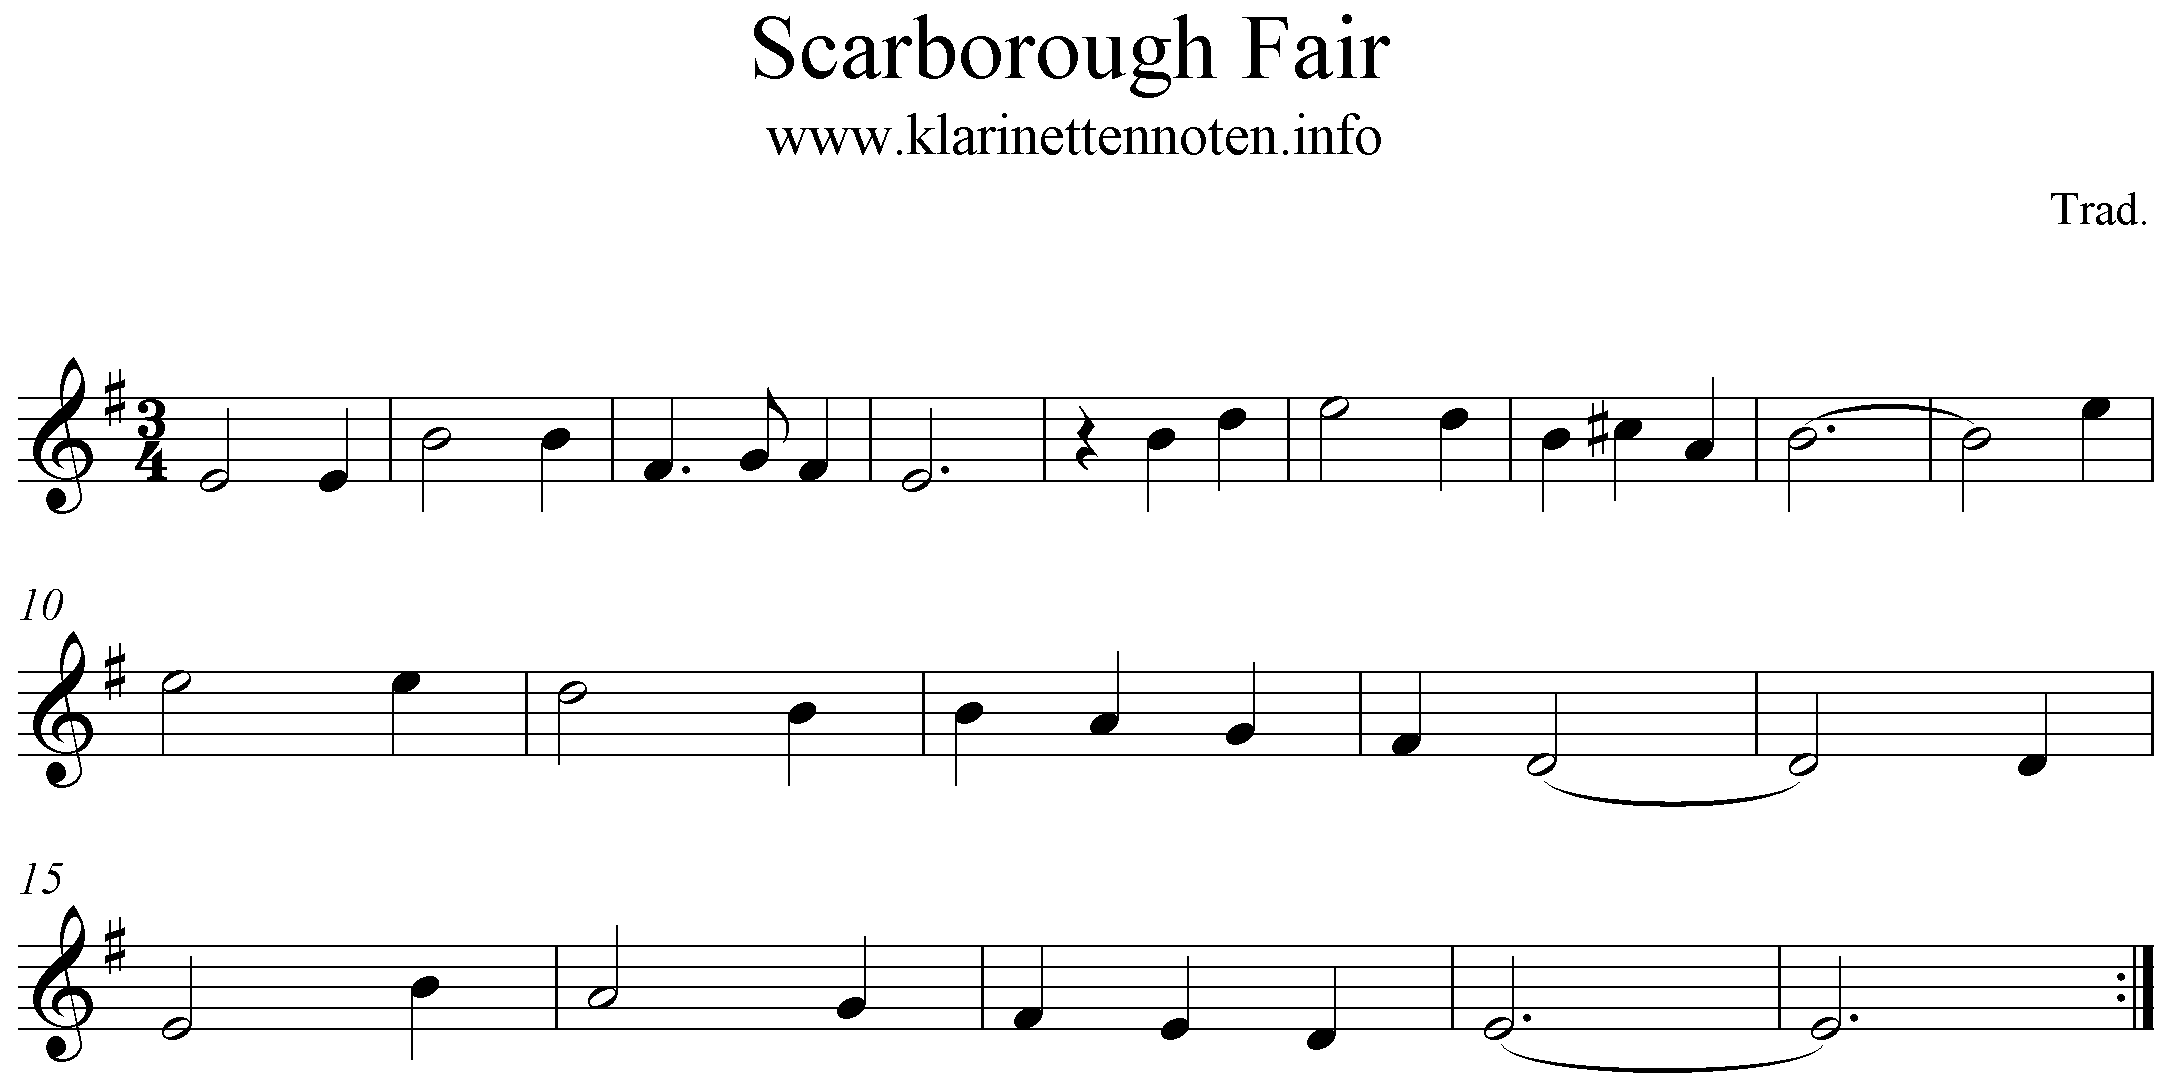 score, freesheet music Scarborough Fair, Clarinette, Em